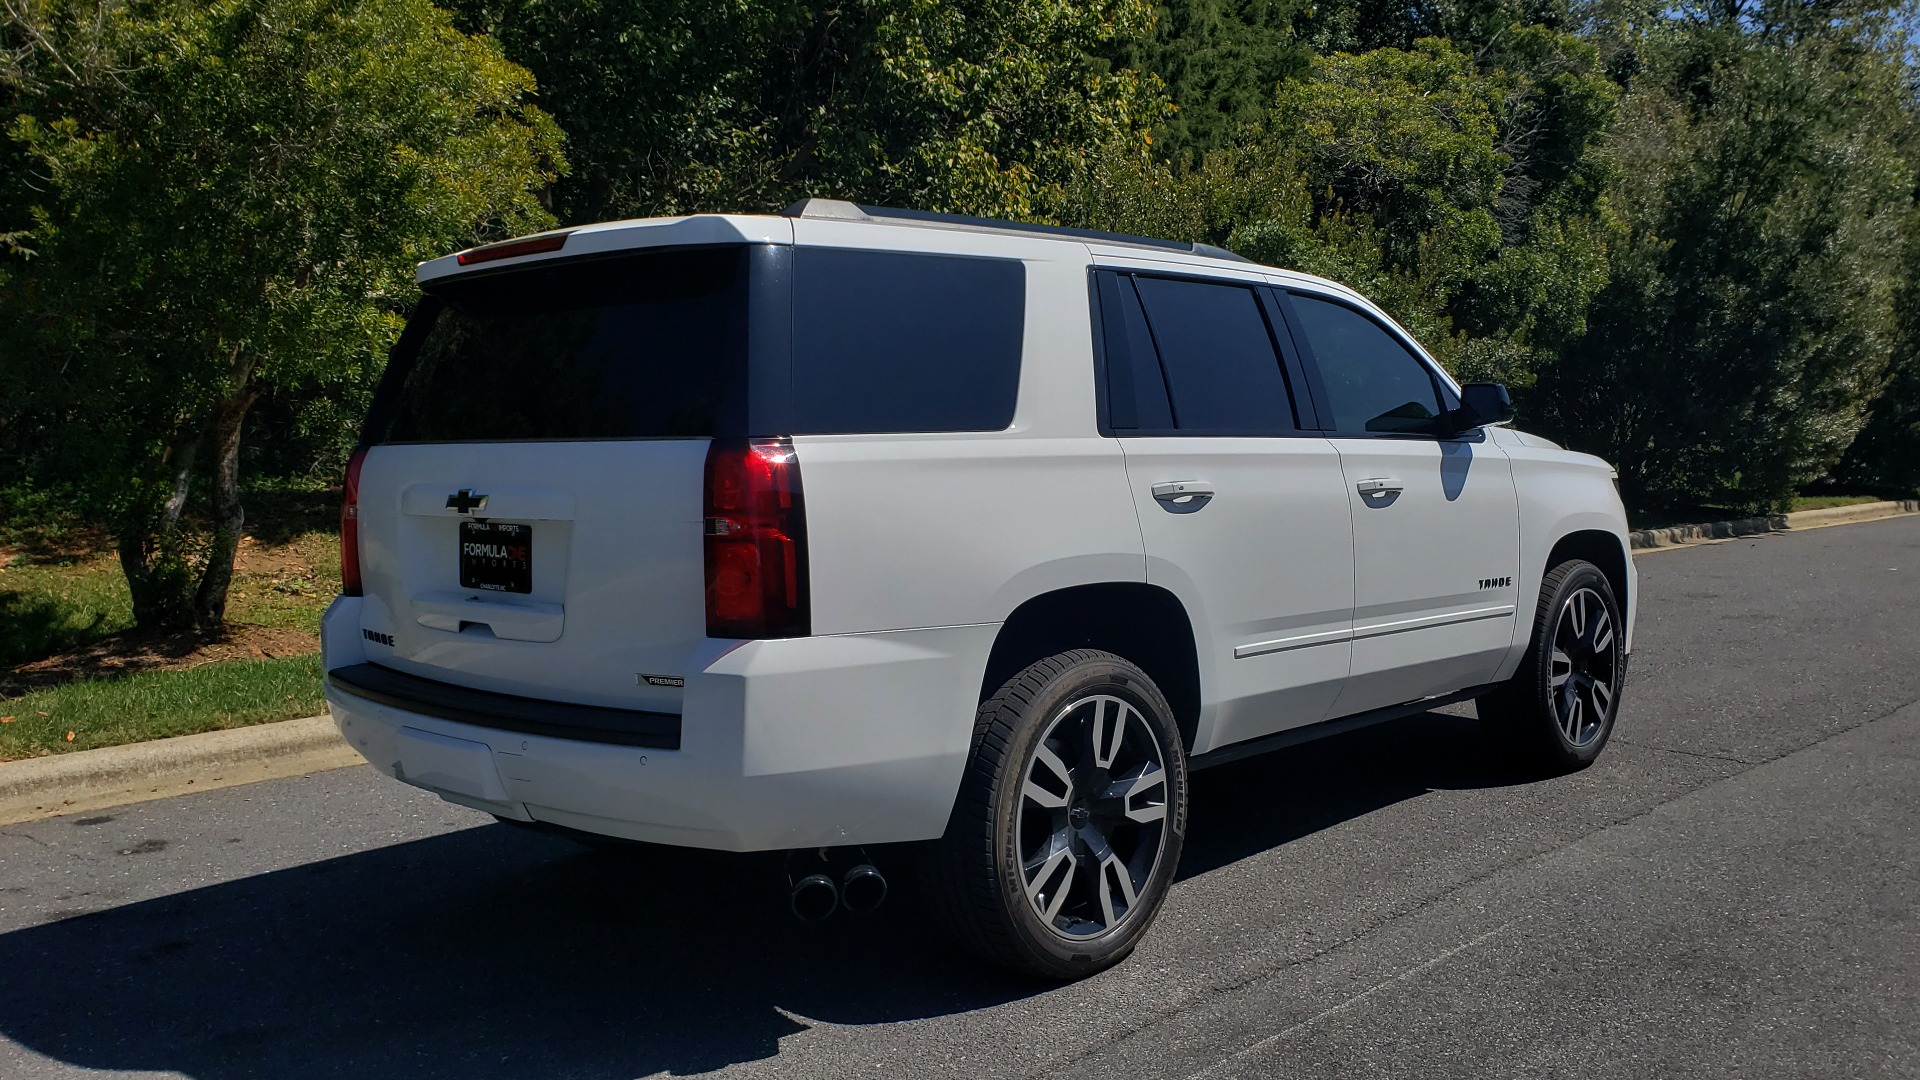 Used 2018 Chevrolet TAHOE PREMIER 4WD / 6.2L V8 / NAV / SUNROOF / ENT / BOSE / 3-ROW / REARVIEW for sale Sold at Formula Imports in Charlotte NC 28227 2